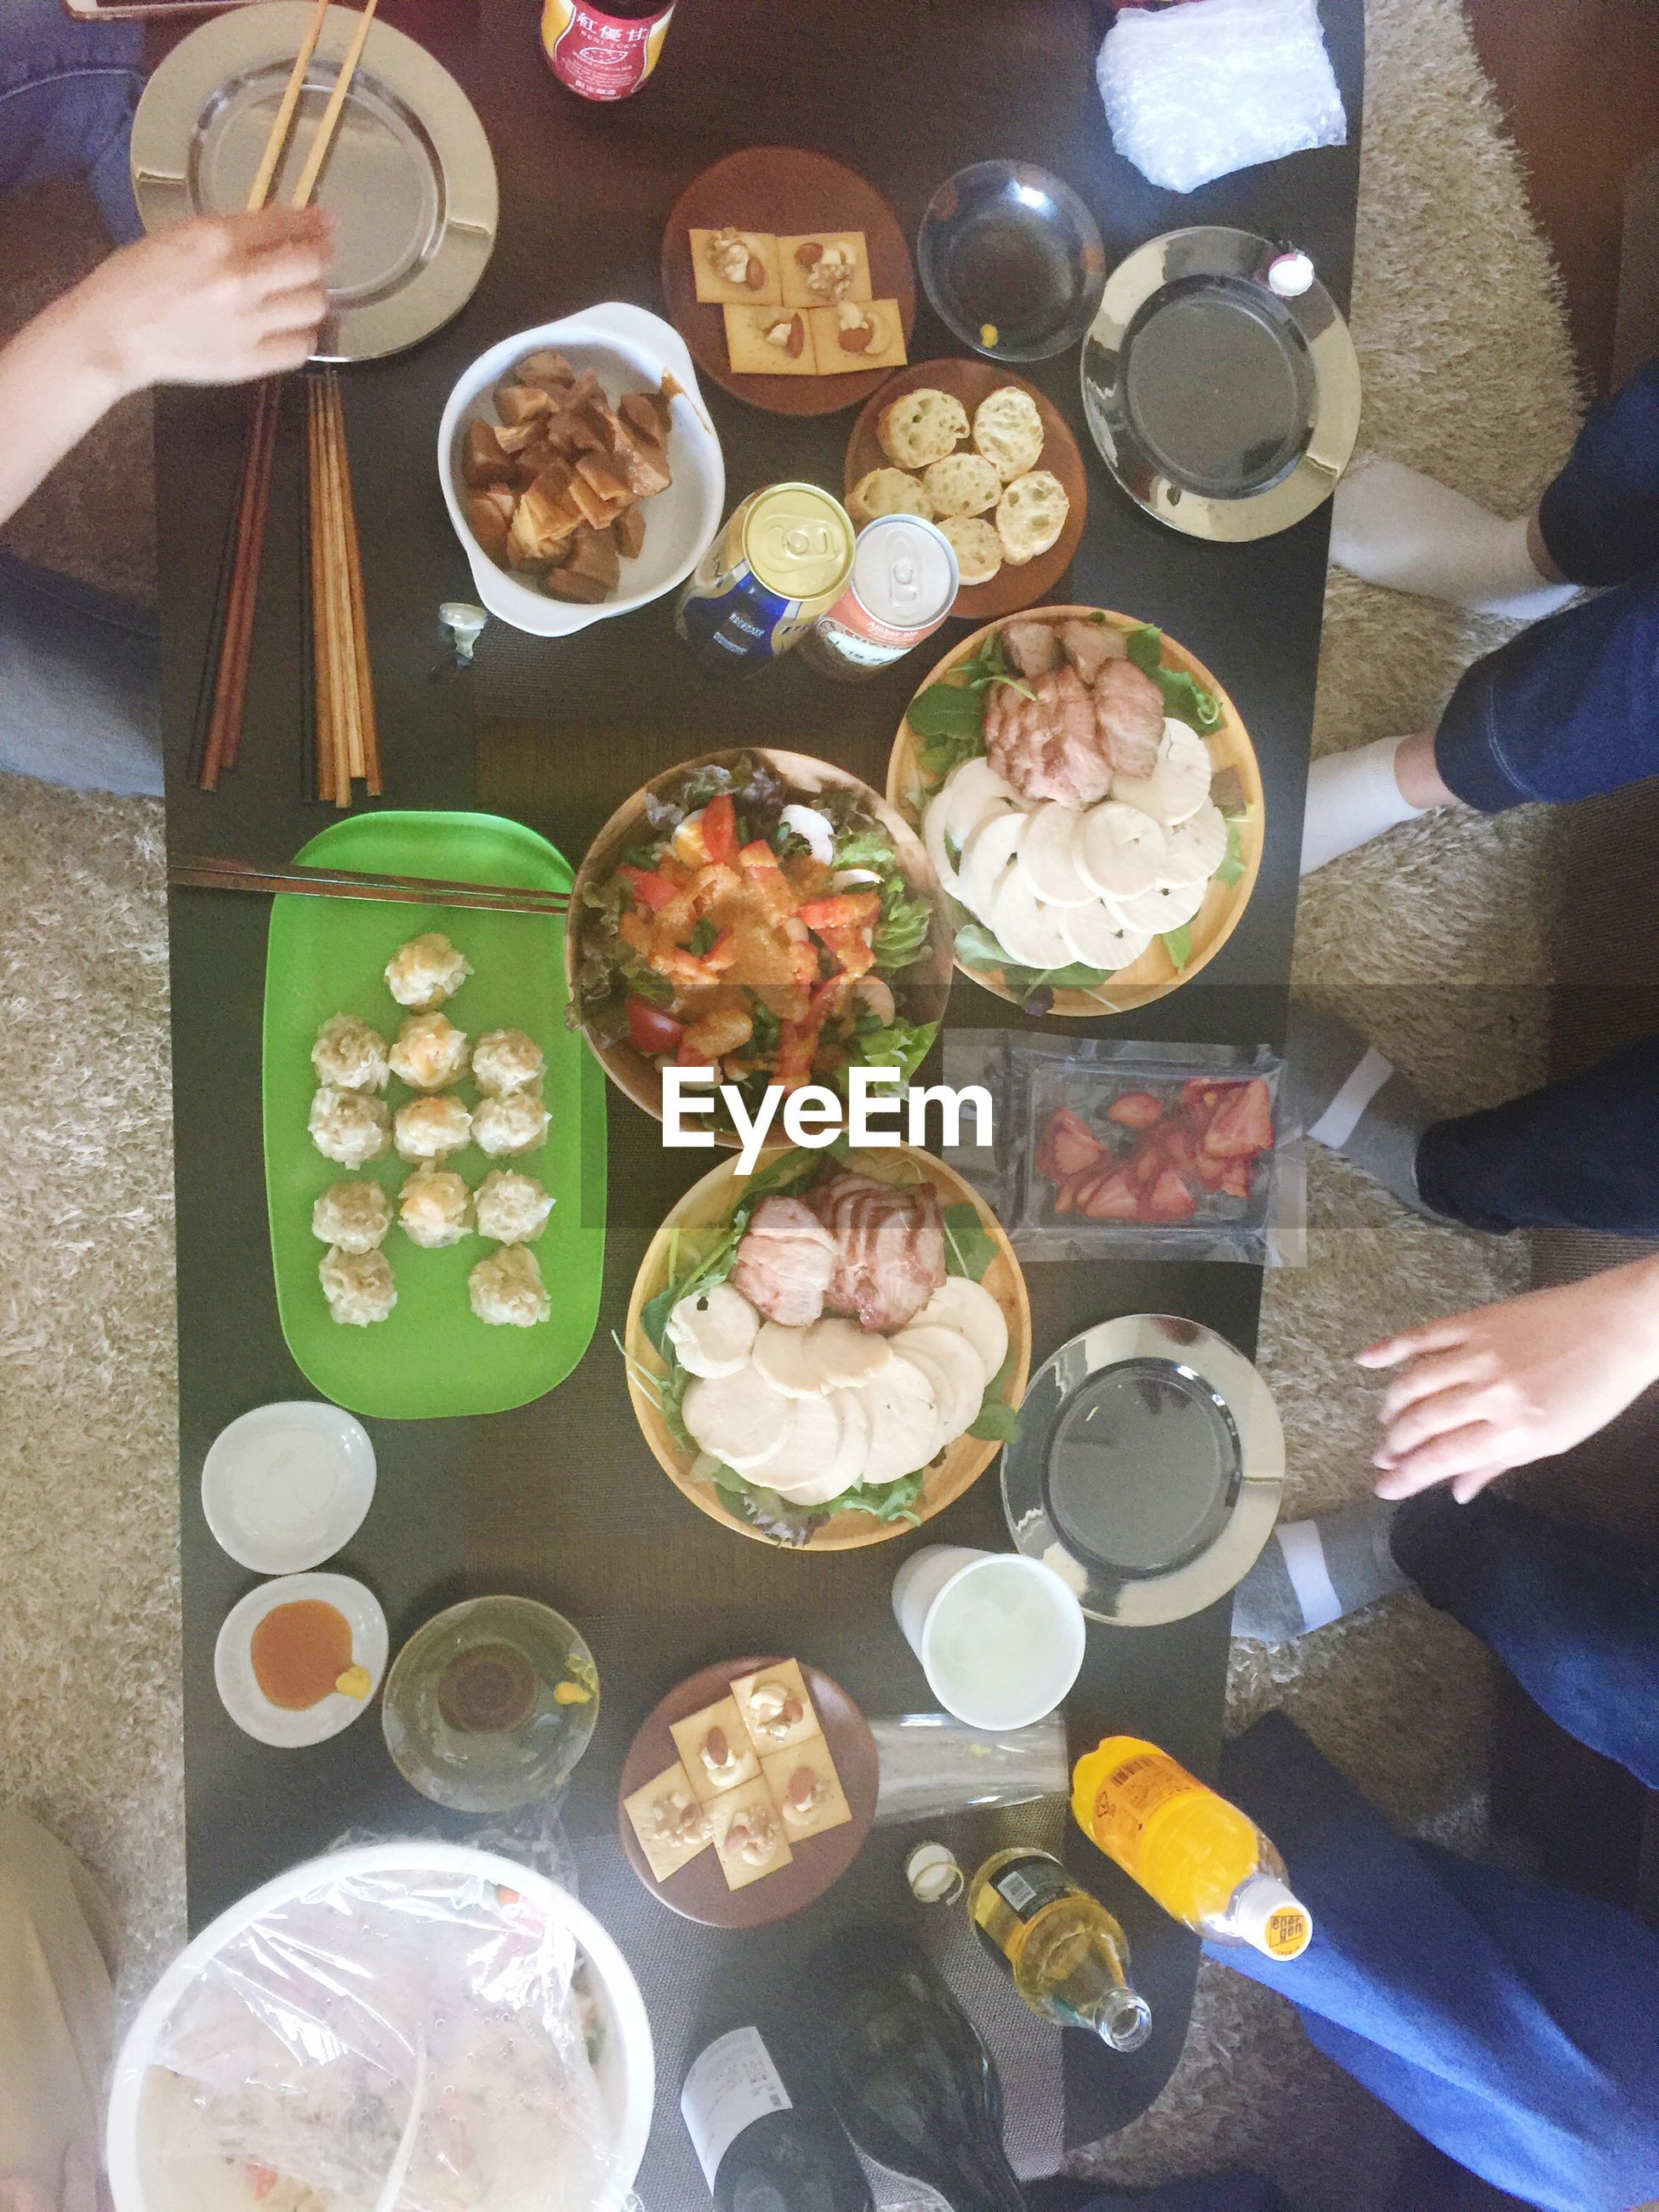 human hand, food and drink, real people, plate, human body part, holding, food, table, freshness, drink, ready-to-eat, men, leisure activity, lifestyles, high angle view, directly above, indoors, serving size, refreshment, bowl, sitting, healthy eating, women, chopsticks, drinking glass, friendship, day, people